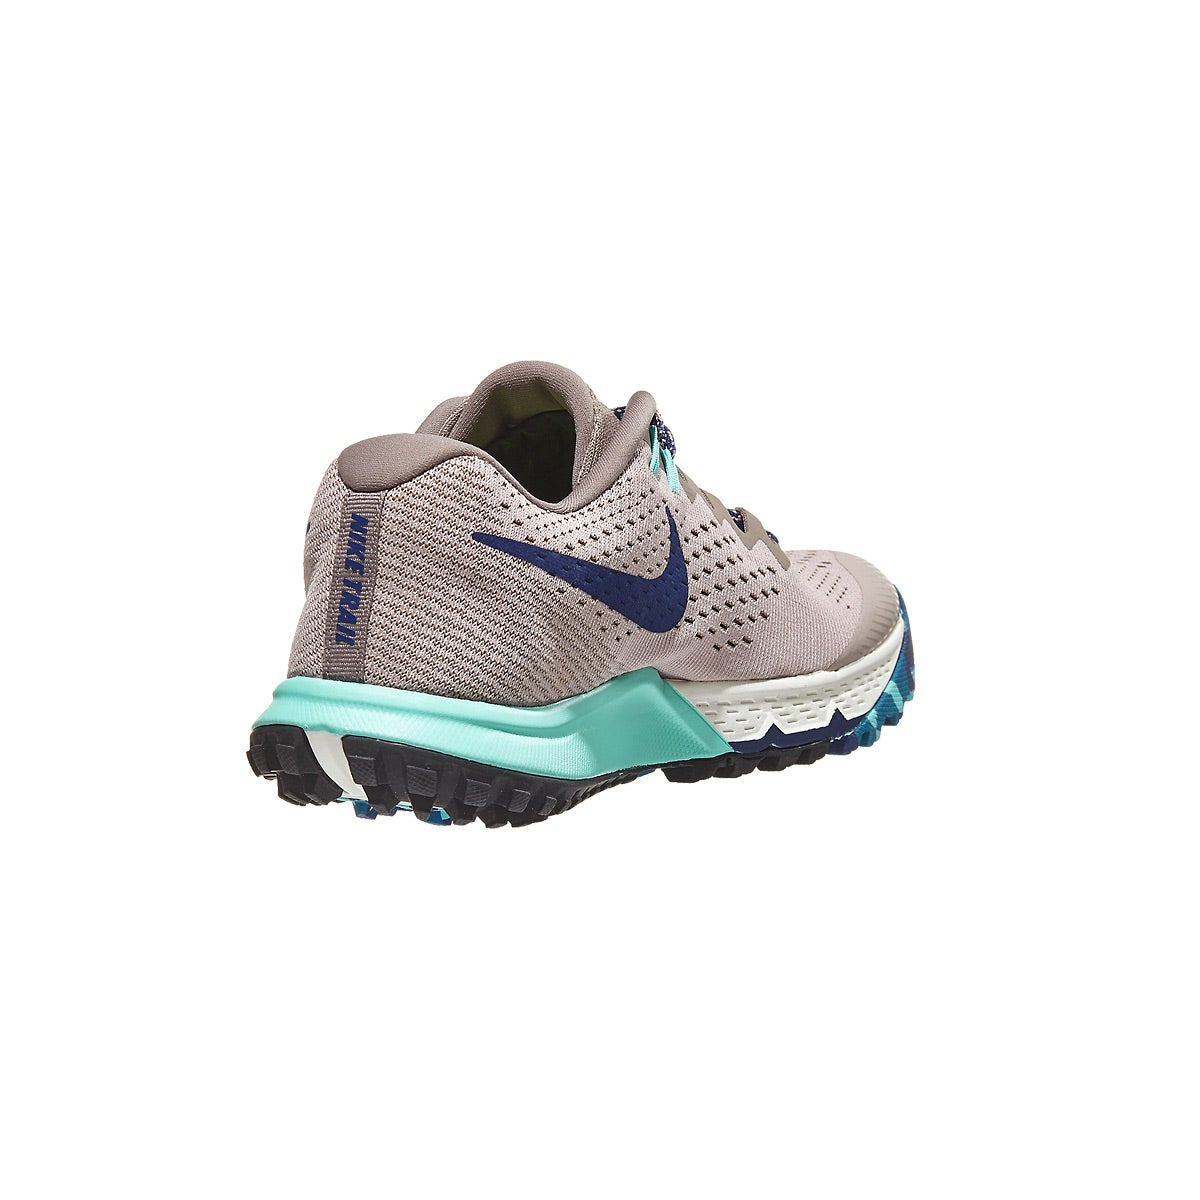 e5d44c080fcbb Nike Zoom Terra Kiger 4 Women s Shoes Diffused Taupe 360° View ...